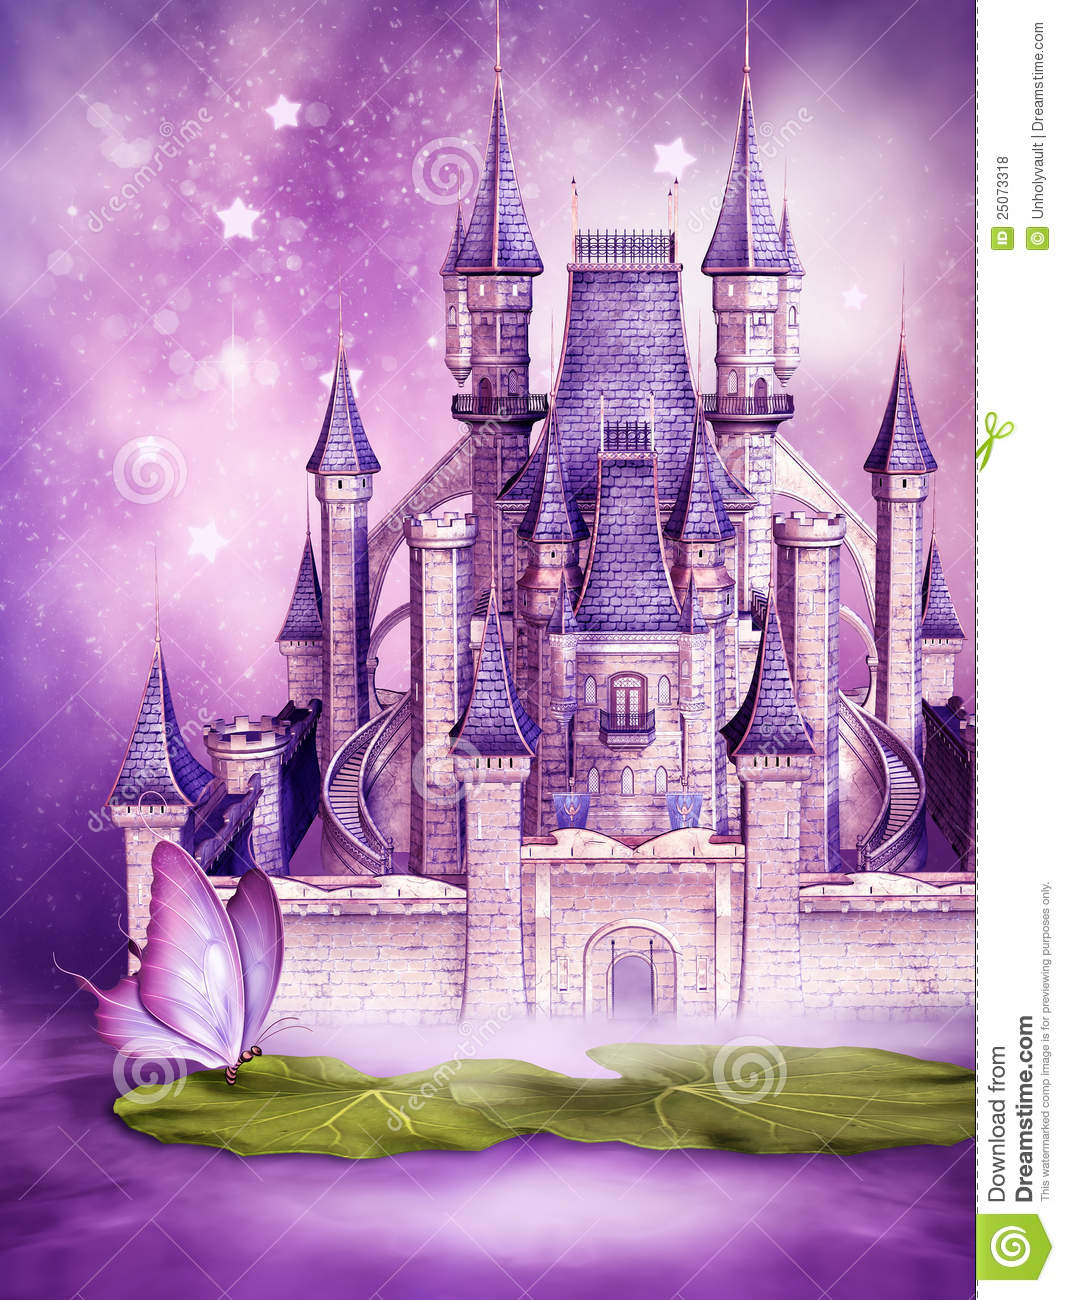 Fairytale Castle On Water Royalty Free Stock Photos